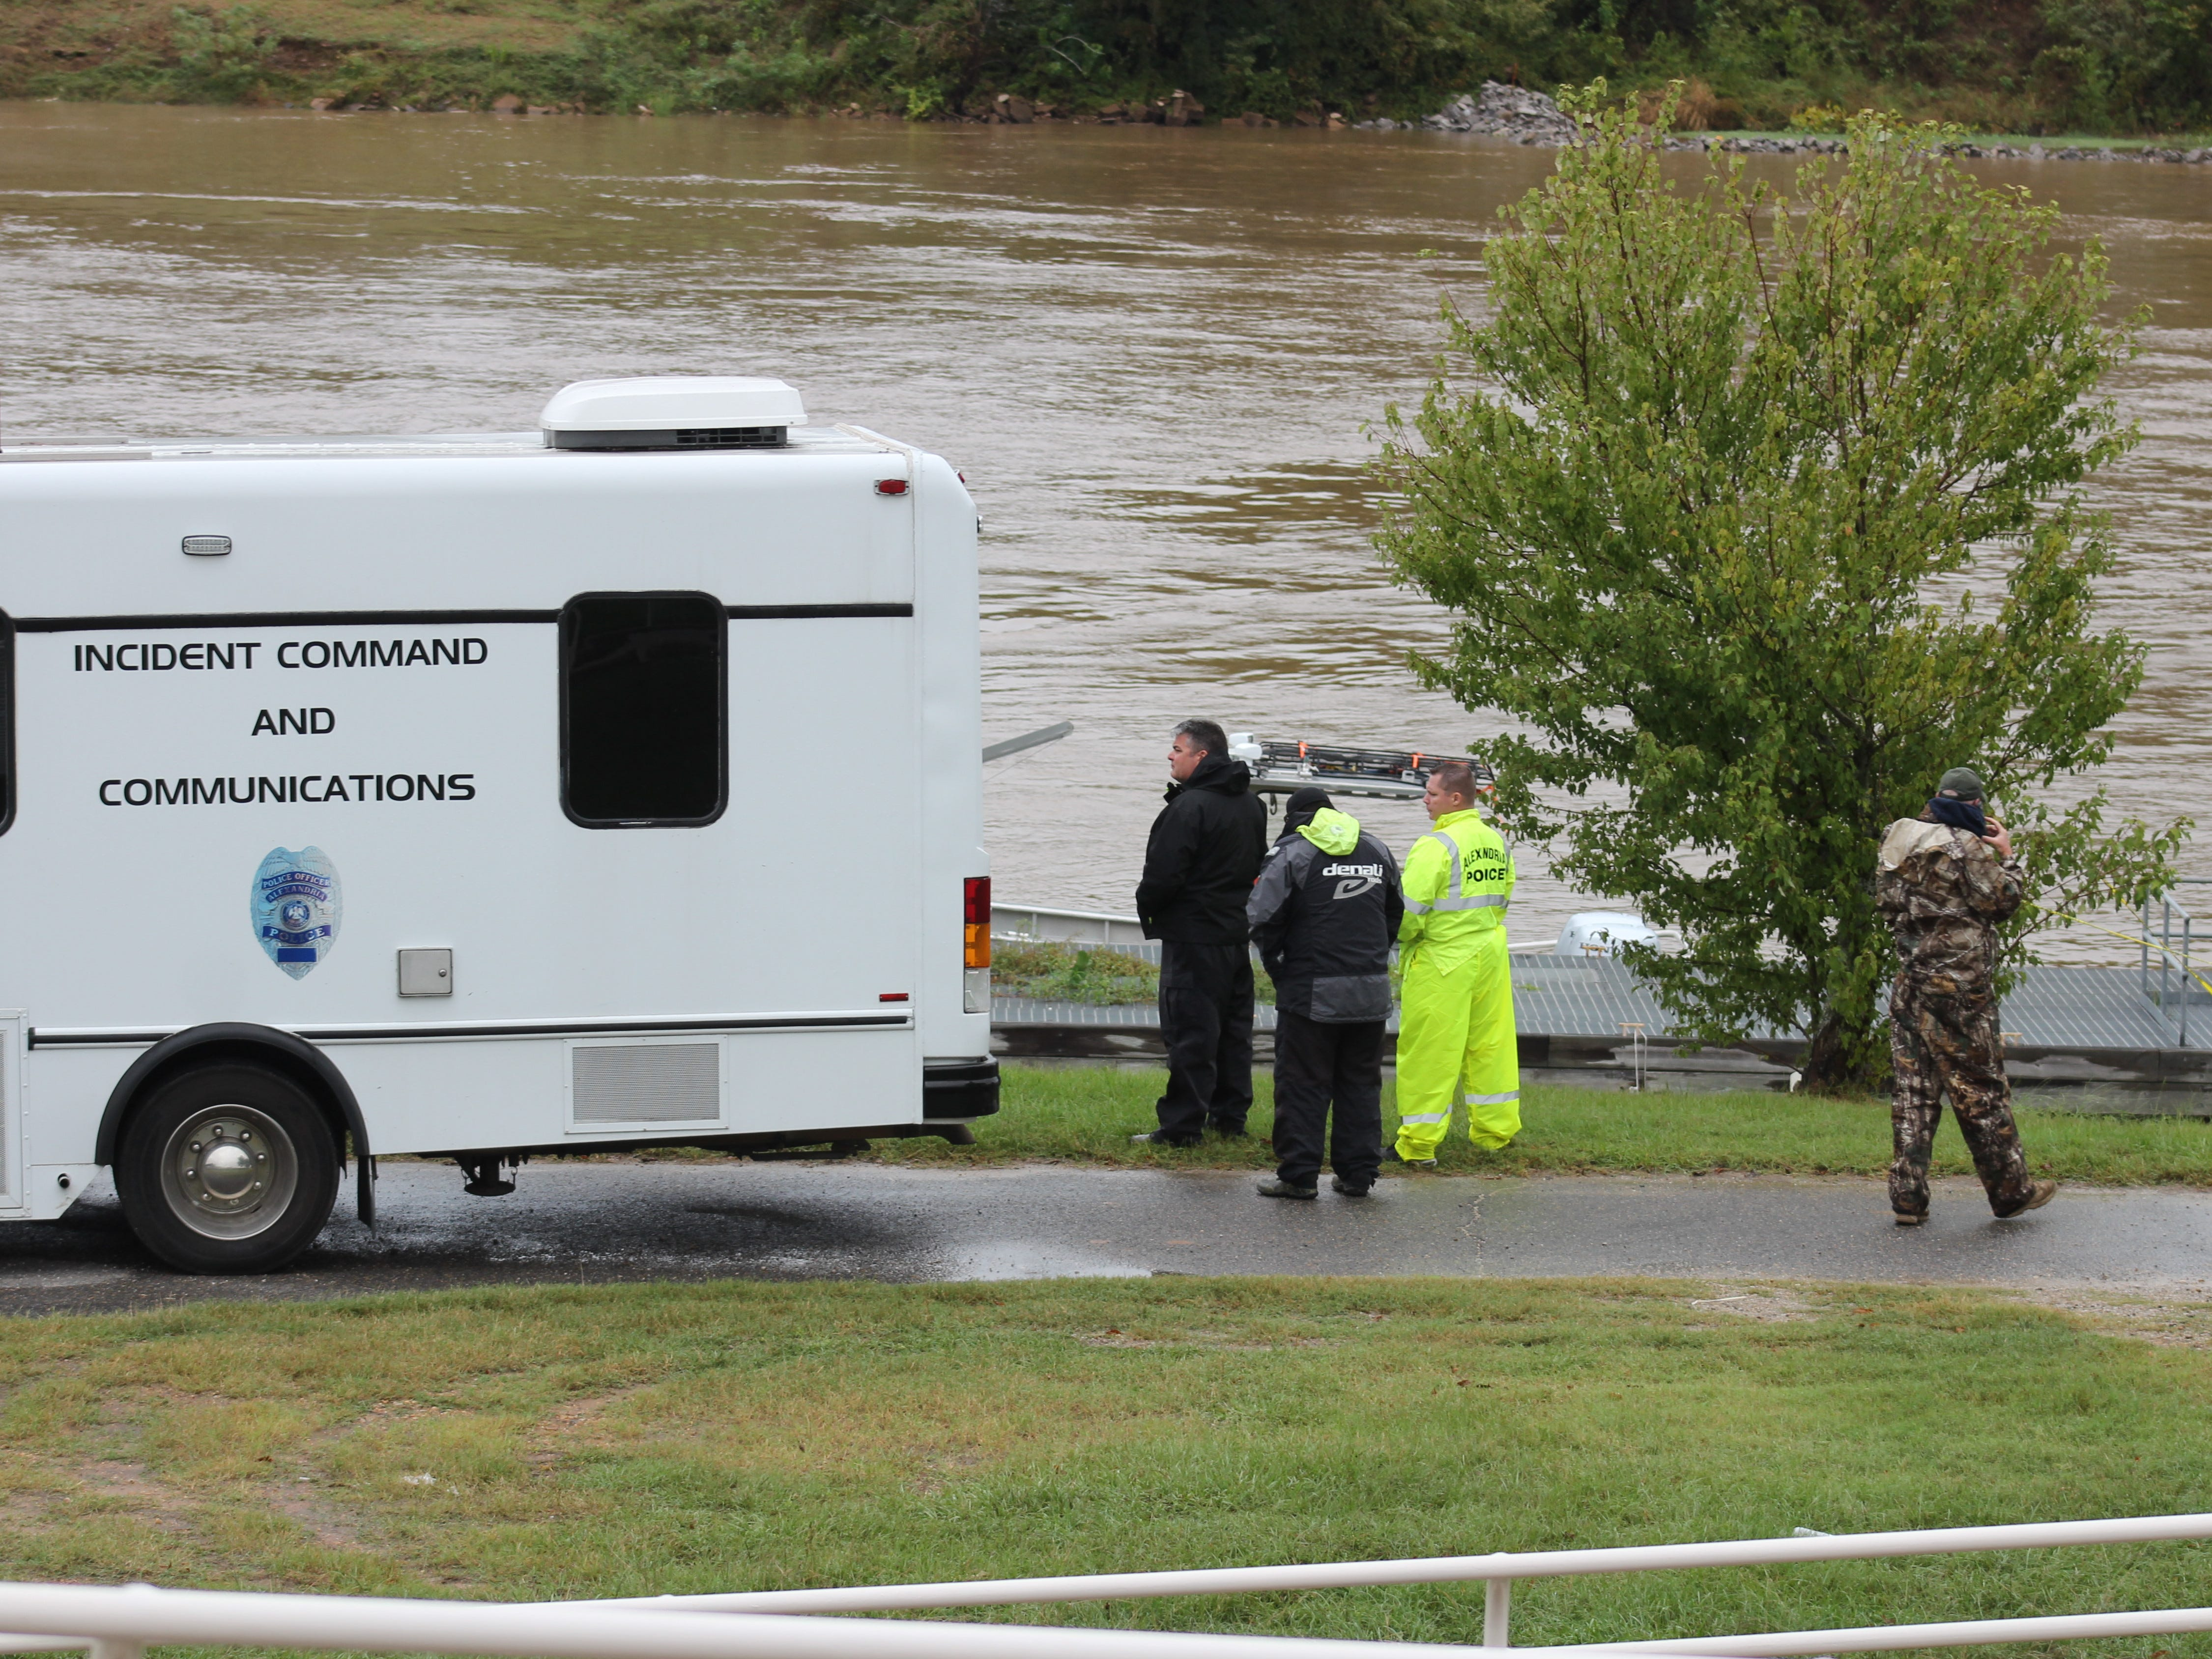 The search for a woman believed to have jumped into the Red River continued on Tuesday despite the colder temperatures and rain. A body believed to be the woman was found Tuesday afternoon. No identity has been released yet.